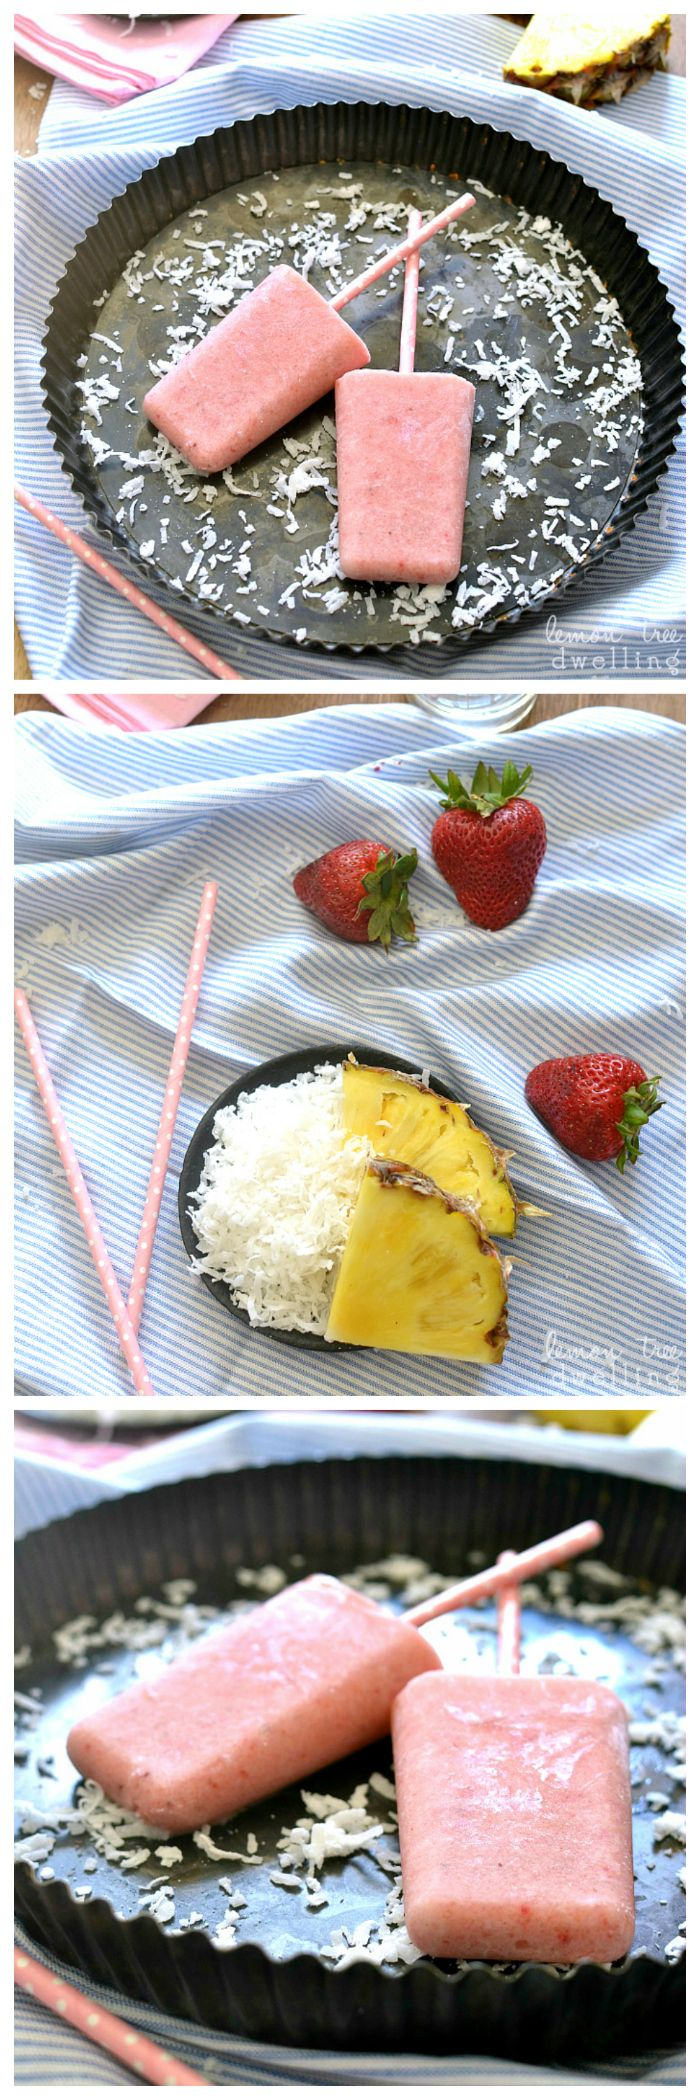 70 Best Popsicles Images On Pinterest Beverage Cafes And Colors Tous Les Jours Strawberry Fresh Cream Cake 2 E Voucher Colada Made With Truvia Natural Sweetener These Combine Fruit Creamy Coconut Milk For A Delicious Treat Thats